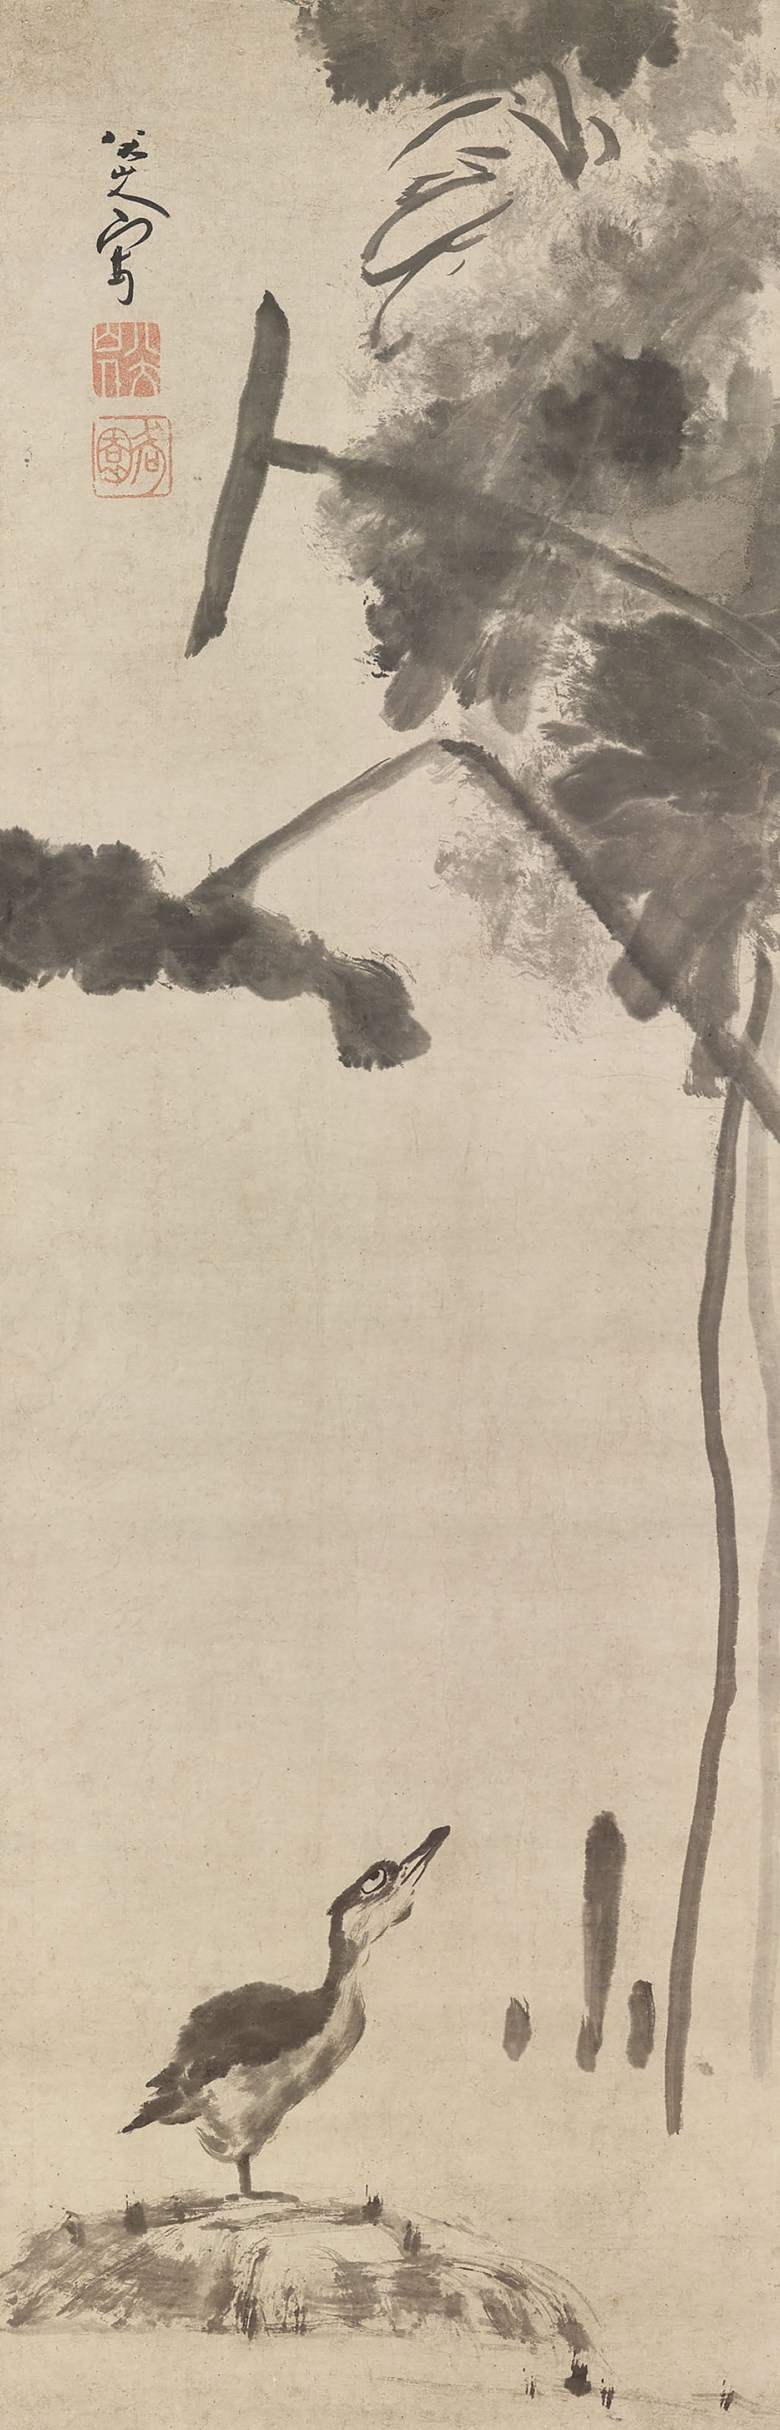 Bada Shanren (1626-1705), Heron and Lotus. 106 x 34.3 cm (41¾ x 13½ in). Sold for HK$6,125,000 on 27 May 2019 at Christie's in Hong Kong